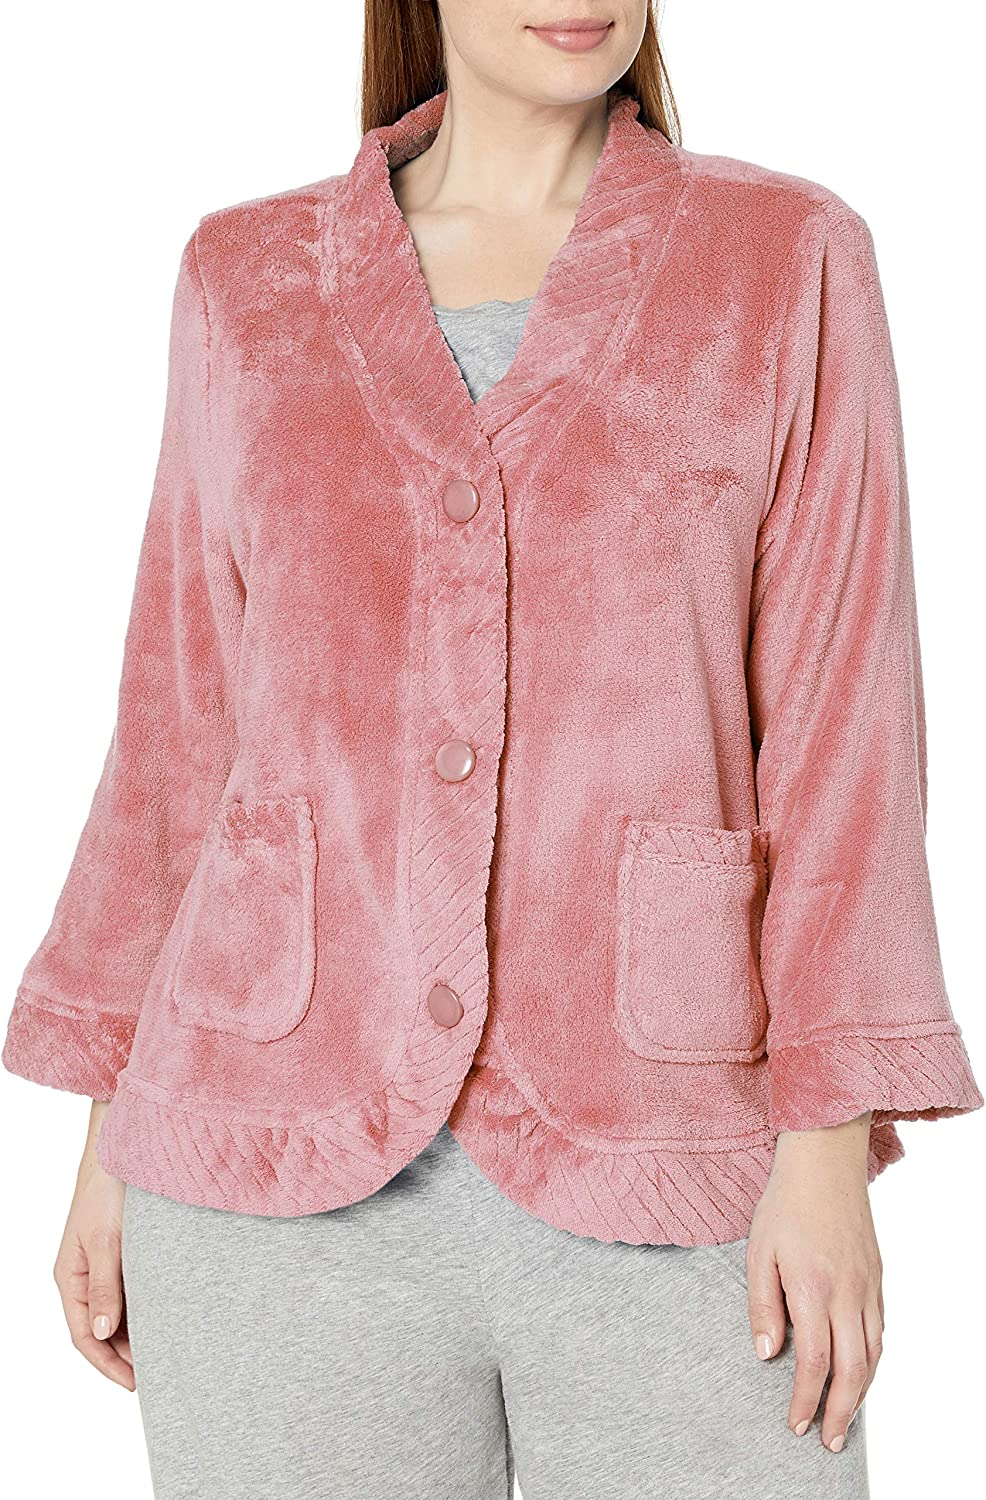 Casual Moments Women's Size Bed Jacket W/Velcro Openings Plus